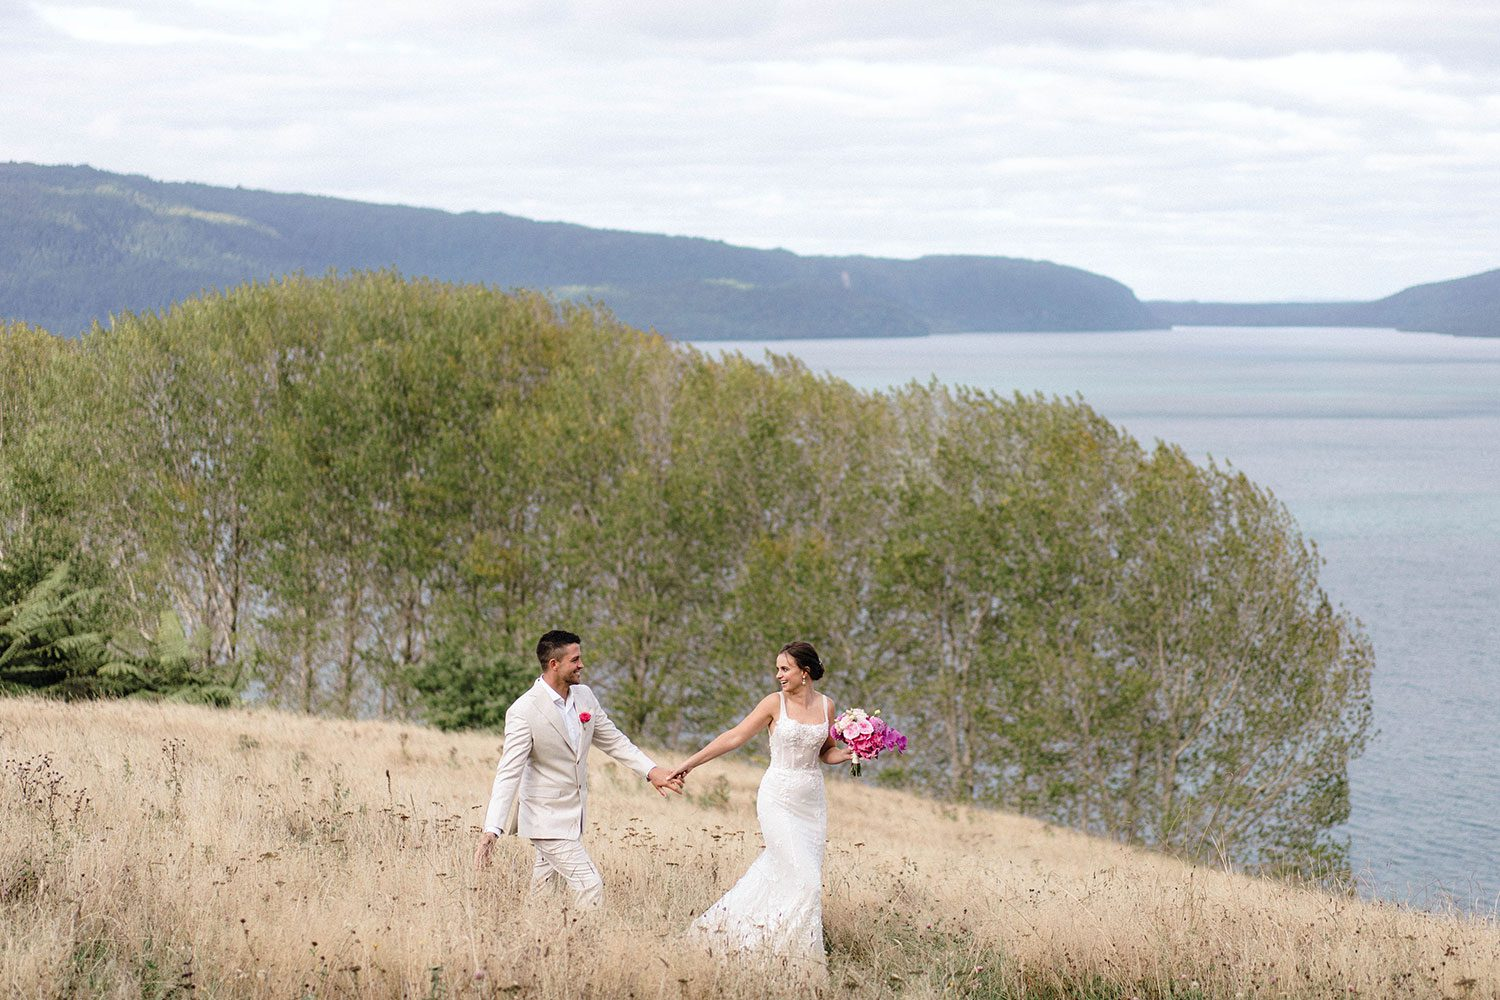 Bride wears bespoke E'More lace gown with boned bodice with hand beaded flower applique and full lace train by Auckland wedding dress maker Vinka designs - with groom holding hands walking in field